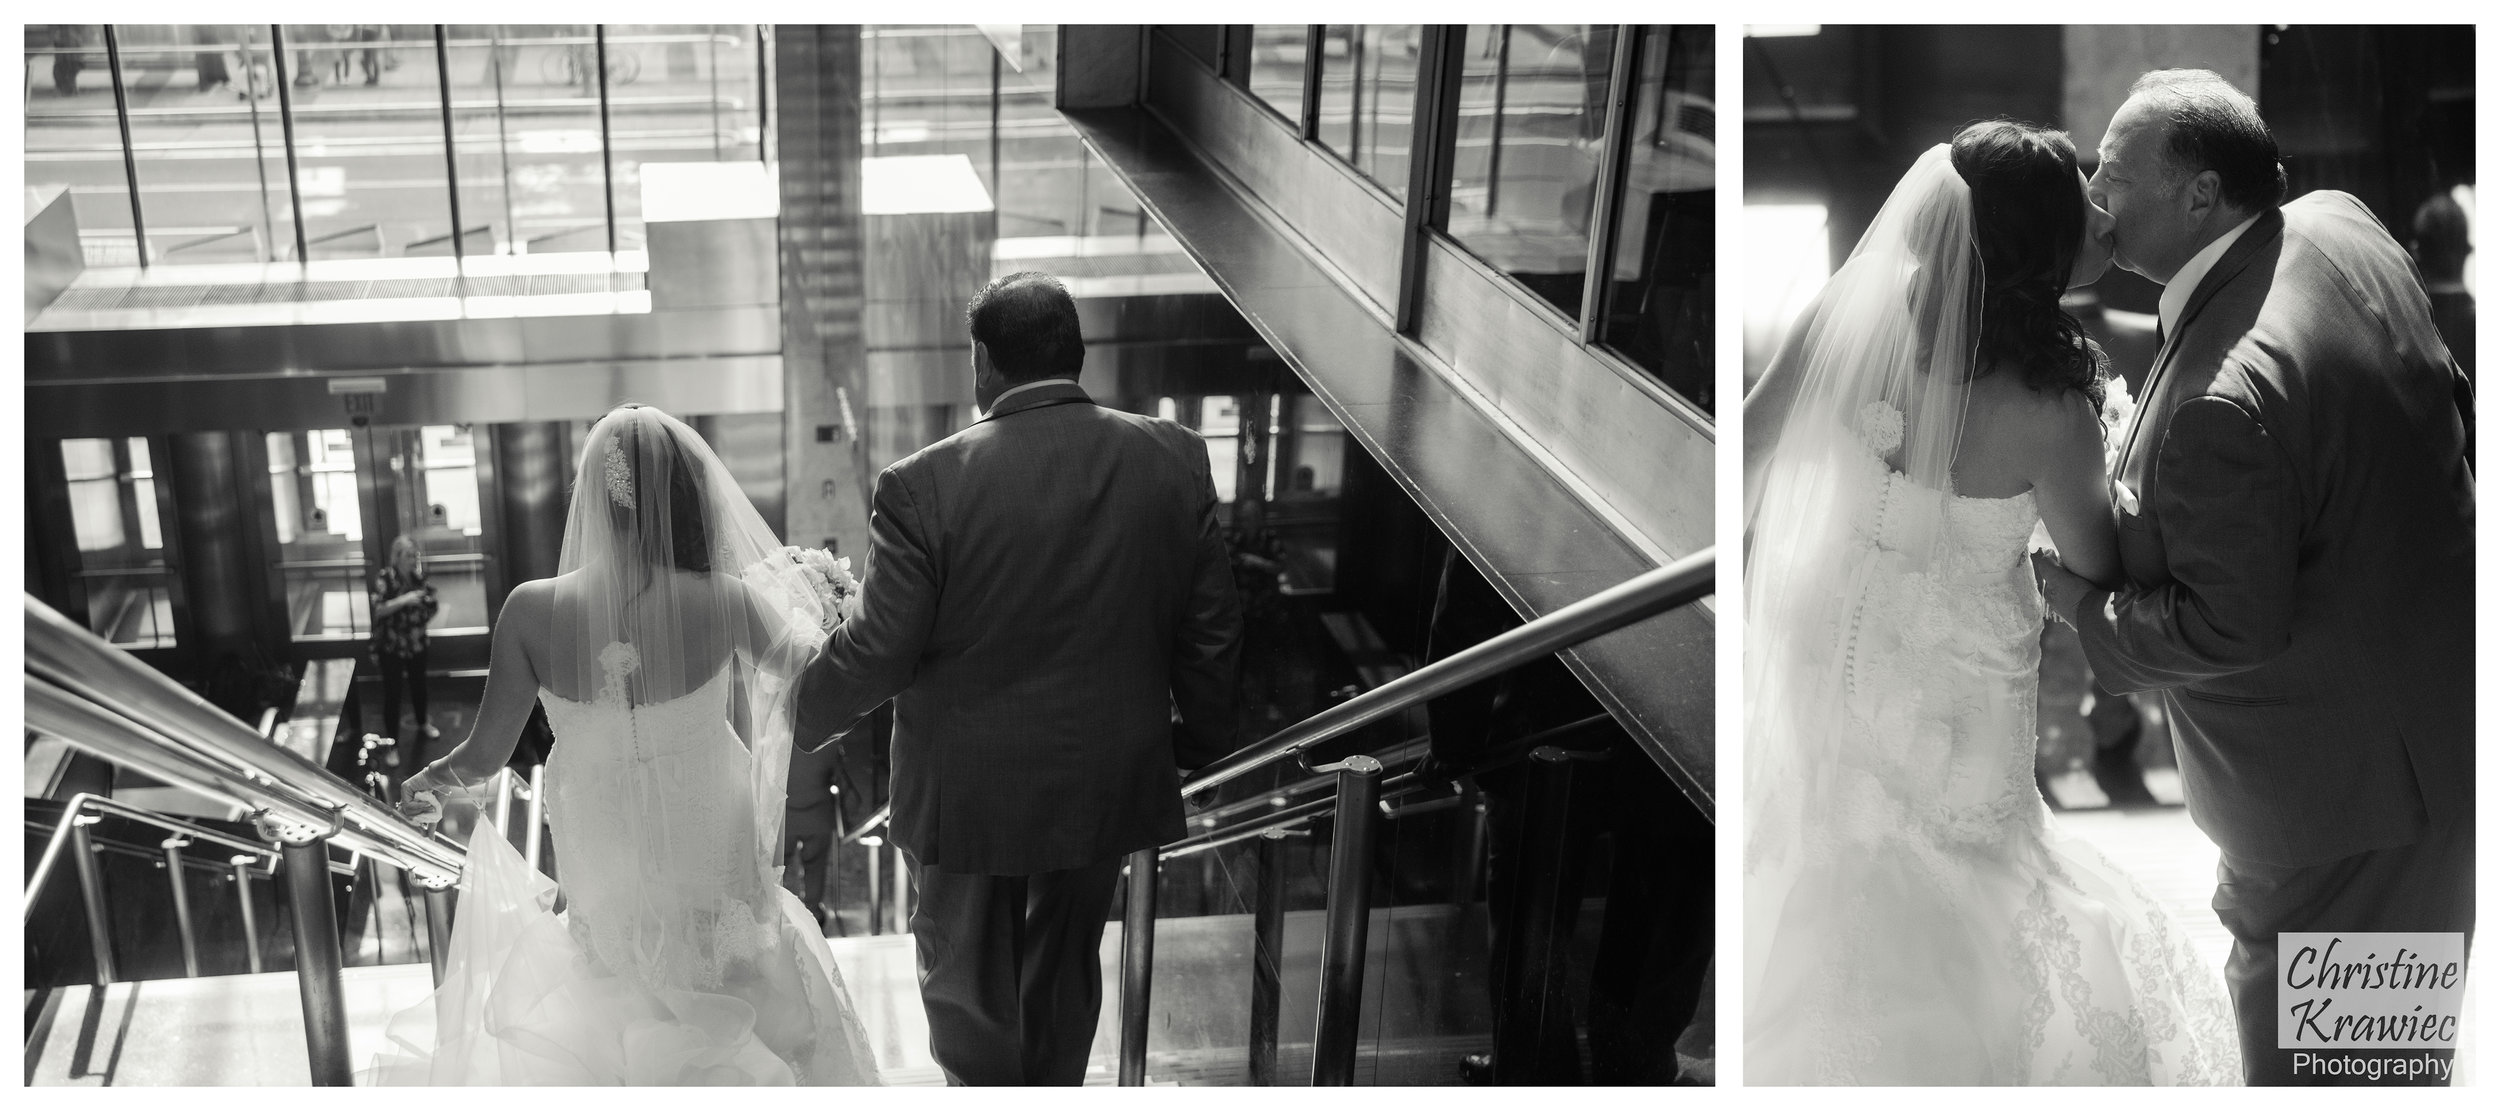 Lauren had the great idea of having her dad walk her to the first look, it's such a beautiful moment between the two of them!